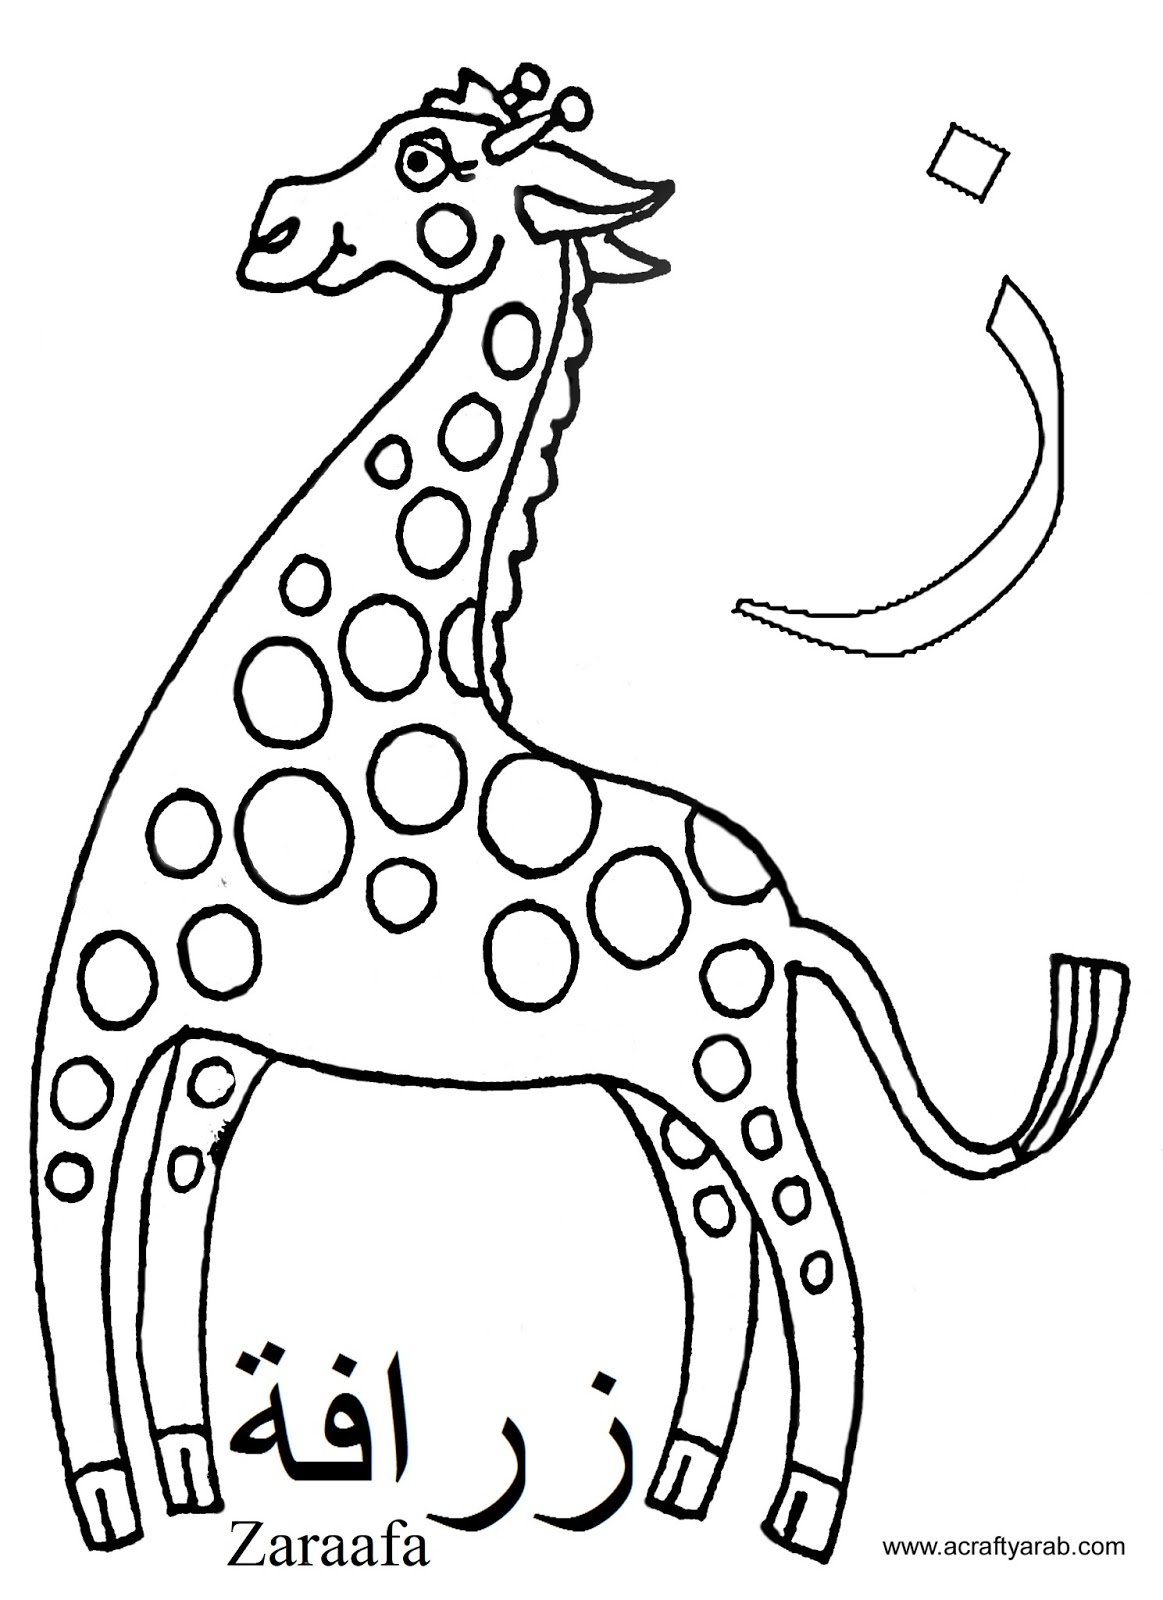 a crafty arab arabic alphabet coloring pages zayn is for zaraafa. Black Bedroom Furniture Sets. Home Design Ideas